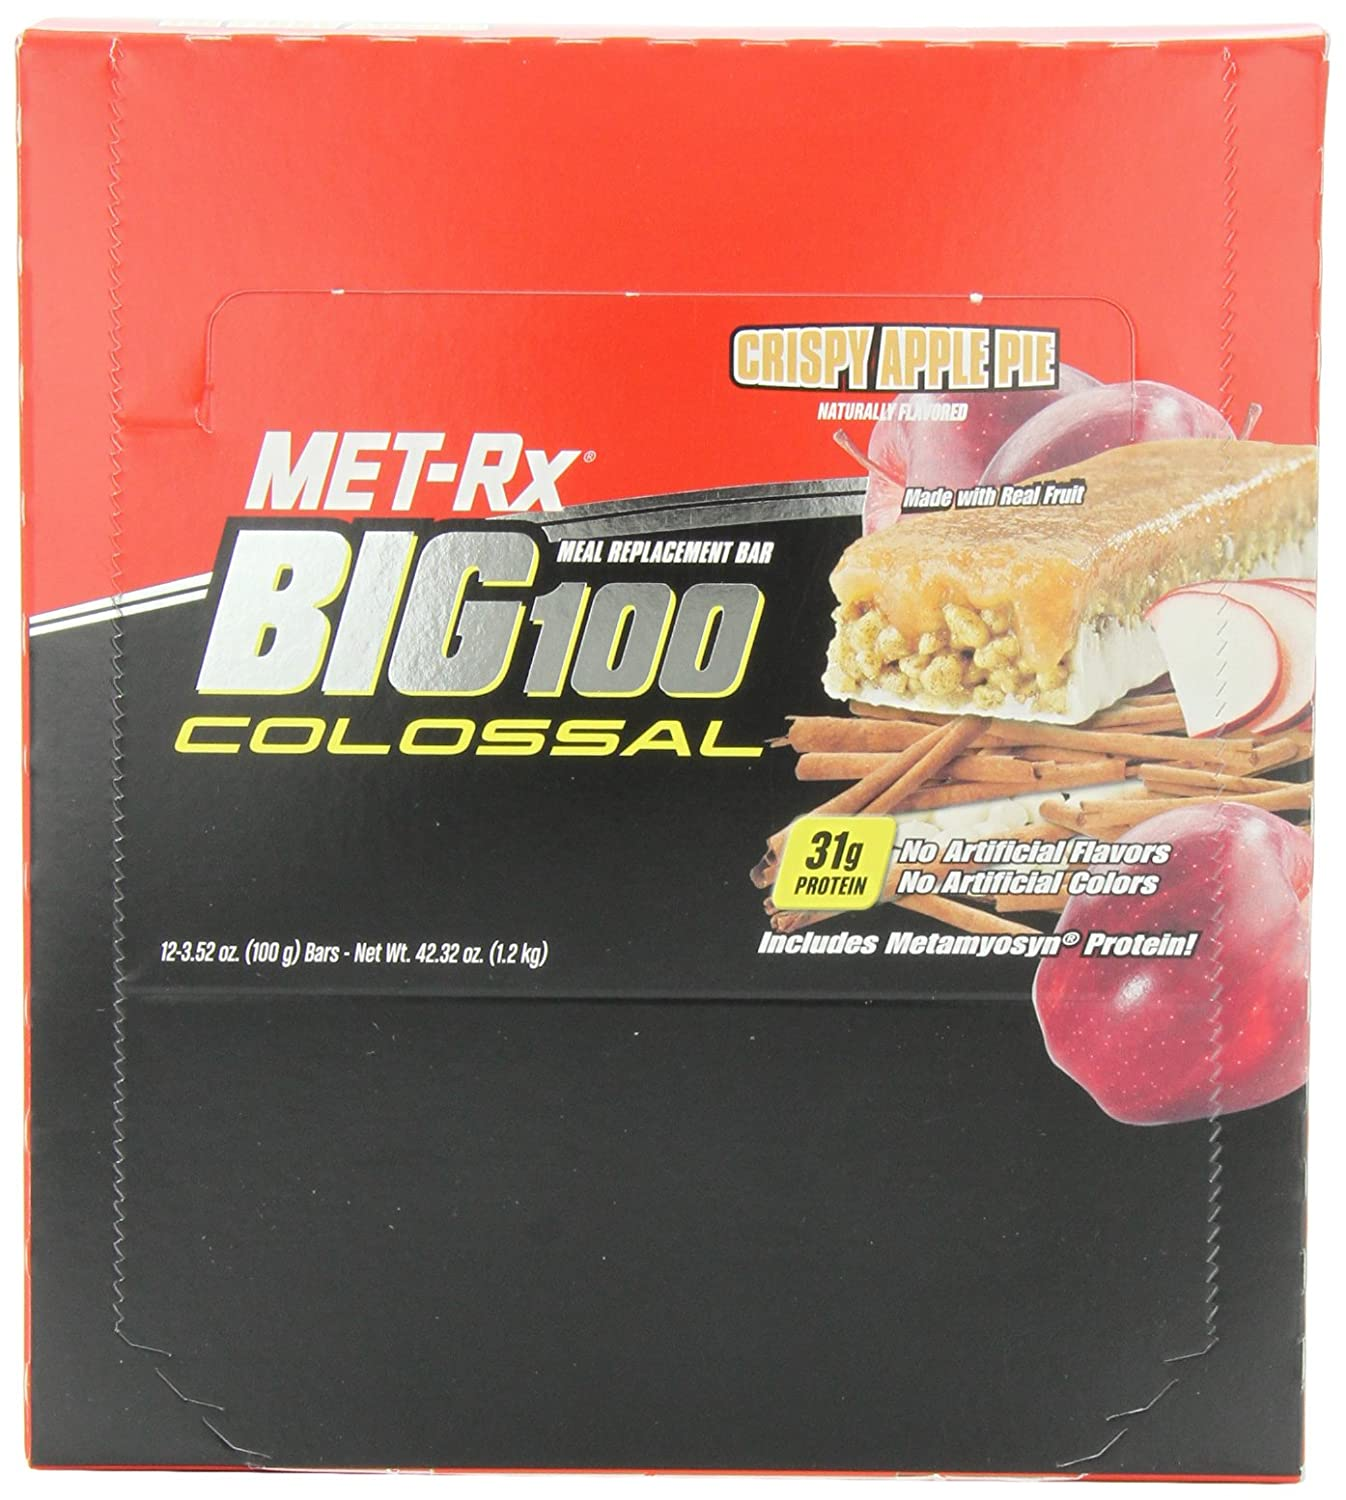 Merveilleux Amazon.com: MET Rx Big 100 Colossal Meal Replacement Bar, Crispy Apple Pie,  12 Bars, 3.52 Ounces: Health U0026 Personal Care